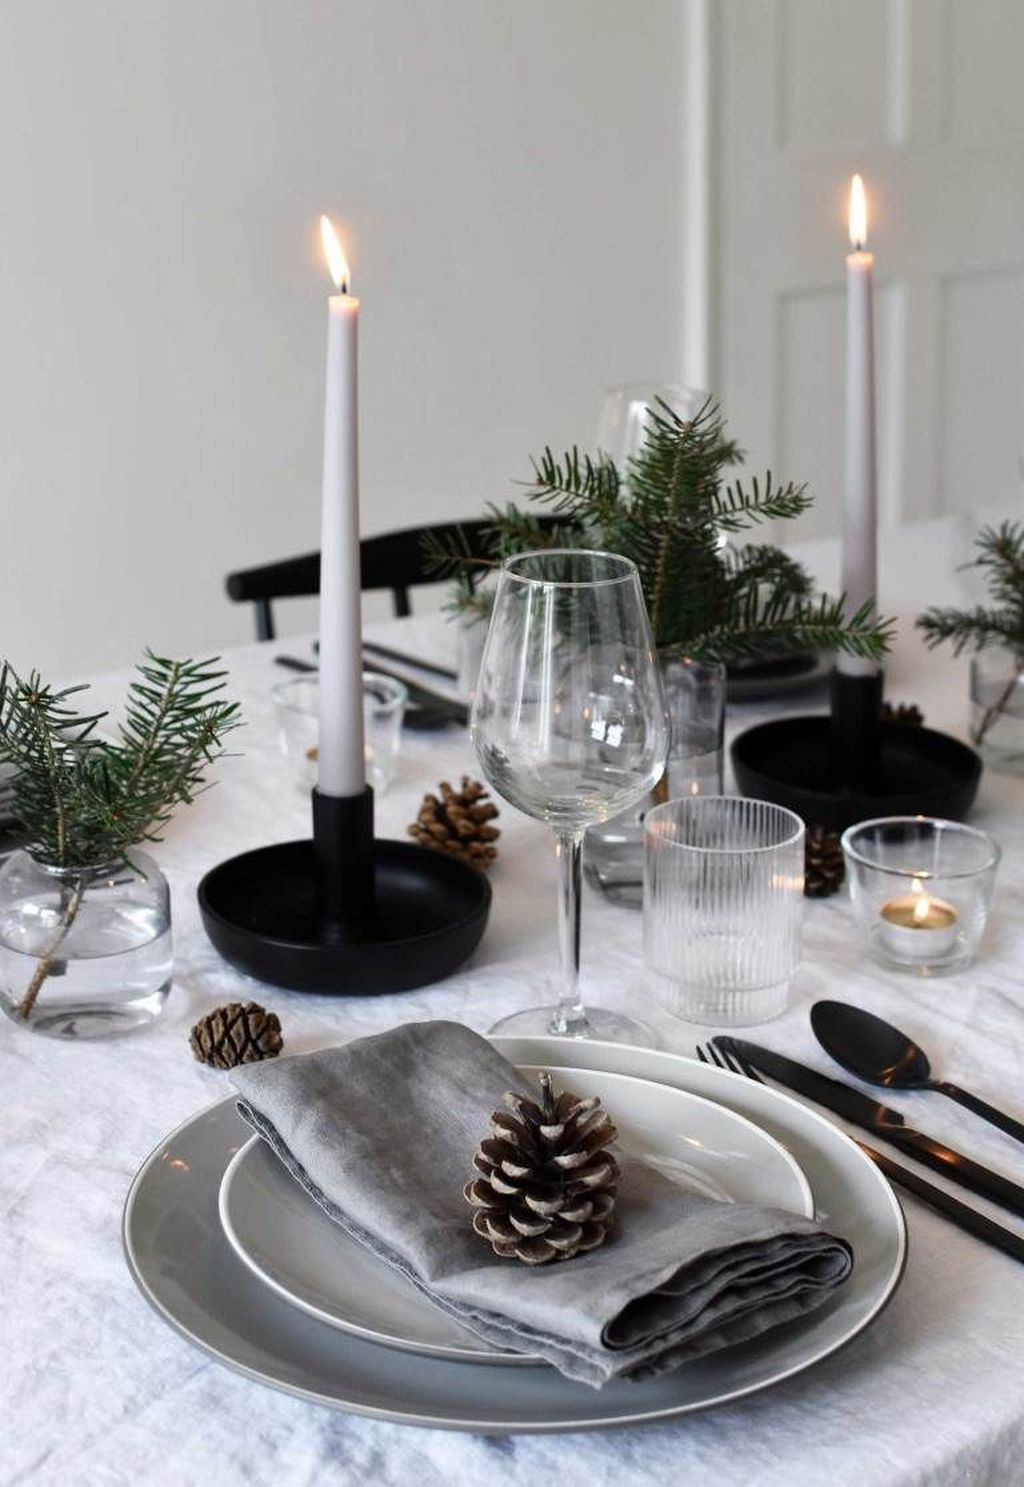 30+ Minimalist Christmas Decor For People Who Don't Have Time To Decorate